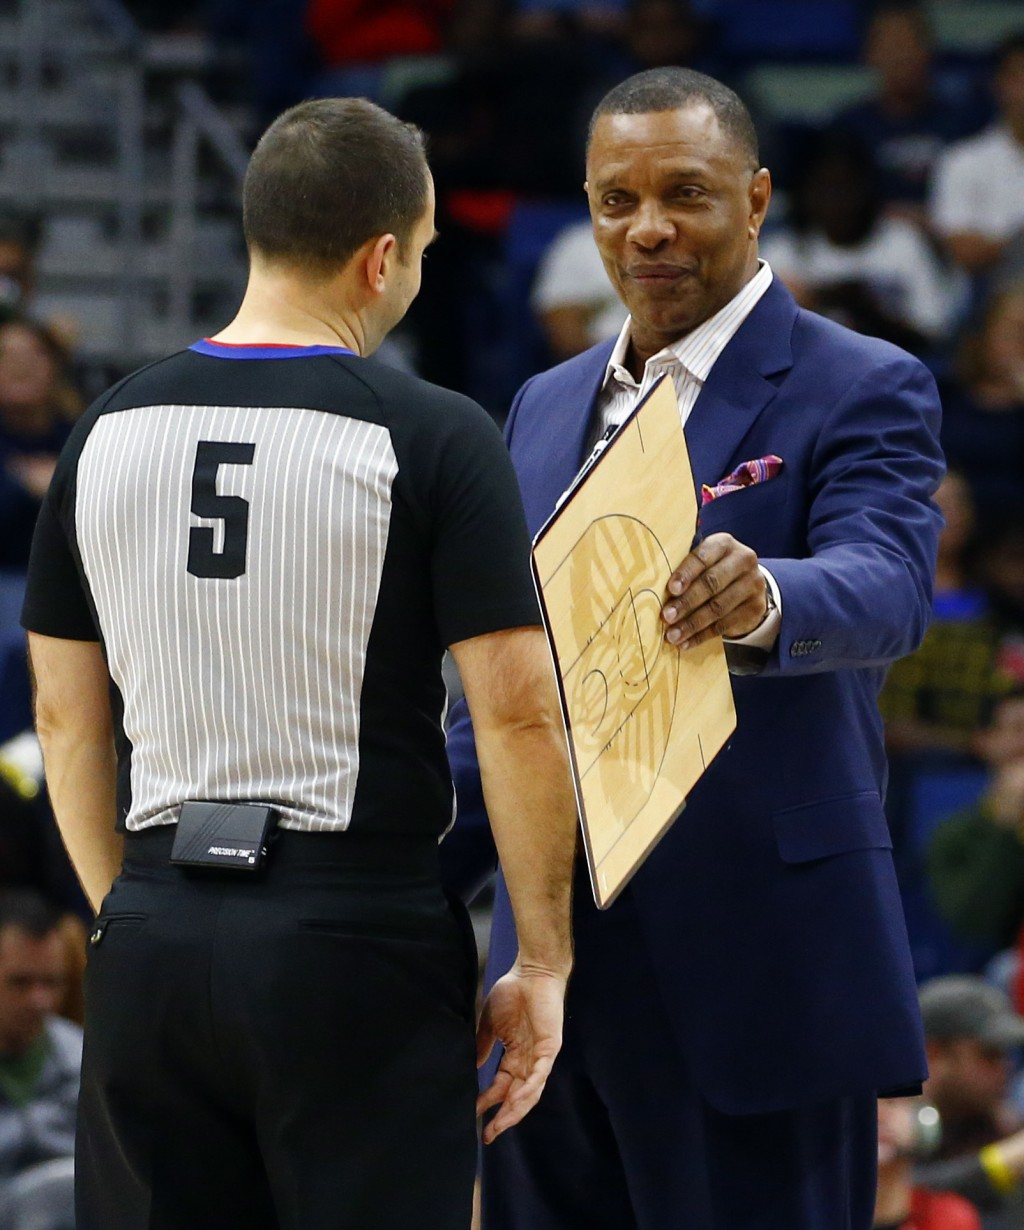 New Orleans Pelicans head coach Alvin Gentry, right, talks with referee Kane Fitzgerald (5) during the first half of an NBA basketball game, Monday, D